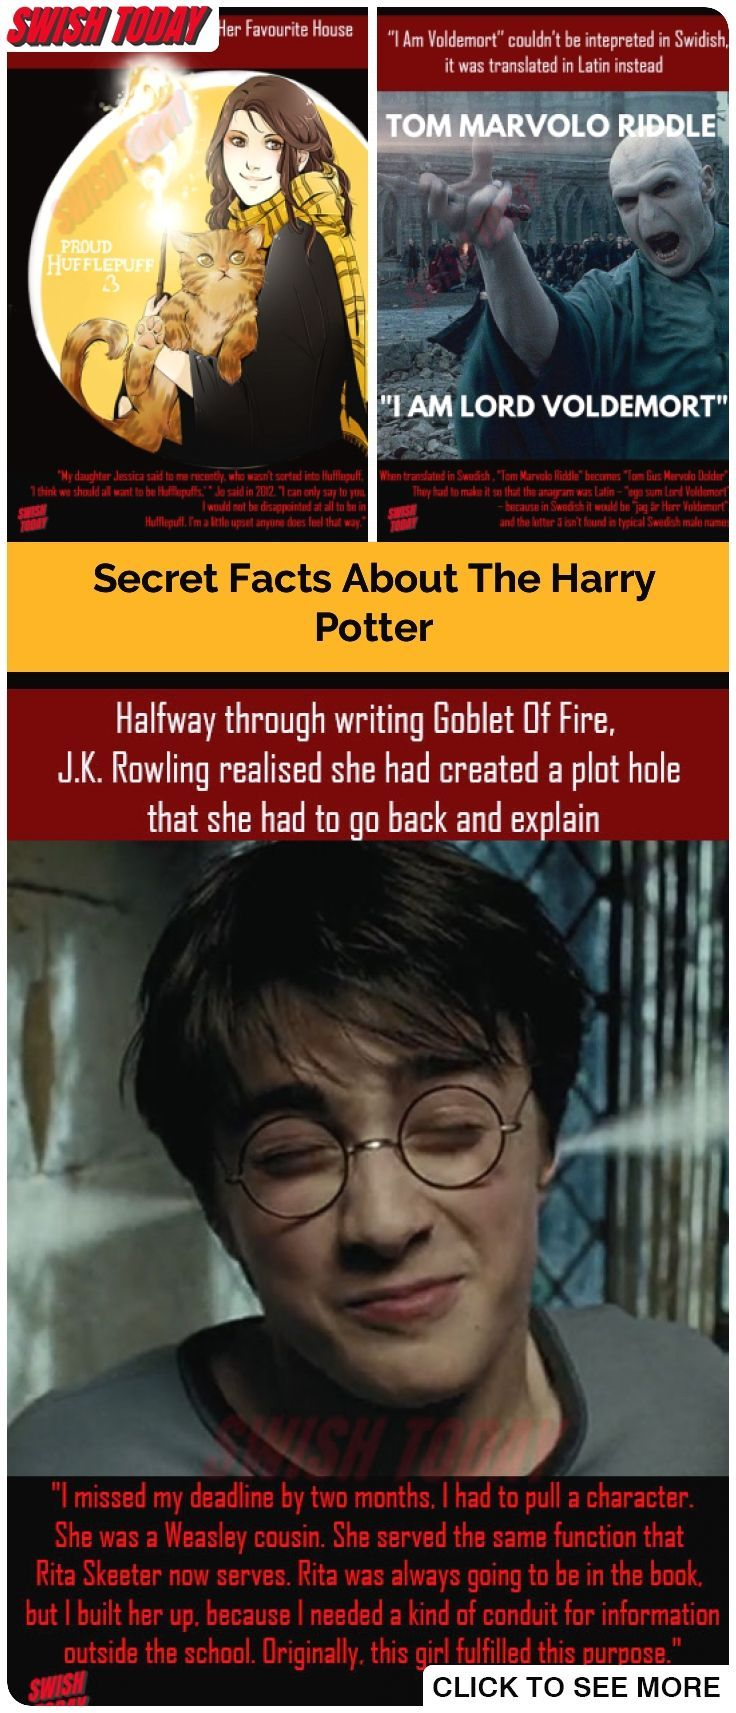 Amazing Facts About The Harry Potter Will Cast A Spell On You Harrypotter Facts Hidden Facts Memes Intr Harry Potter Facts Harry Potter Funny Potter Facts